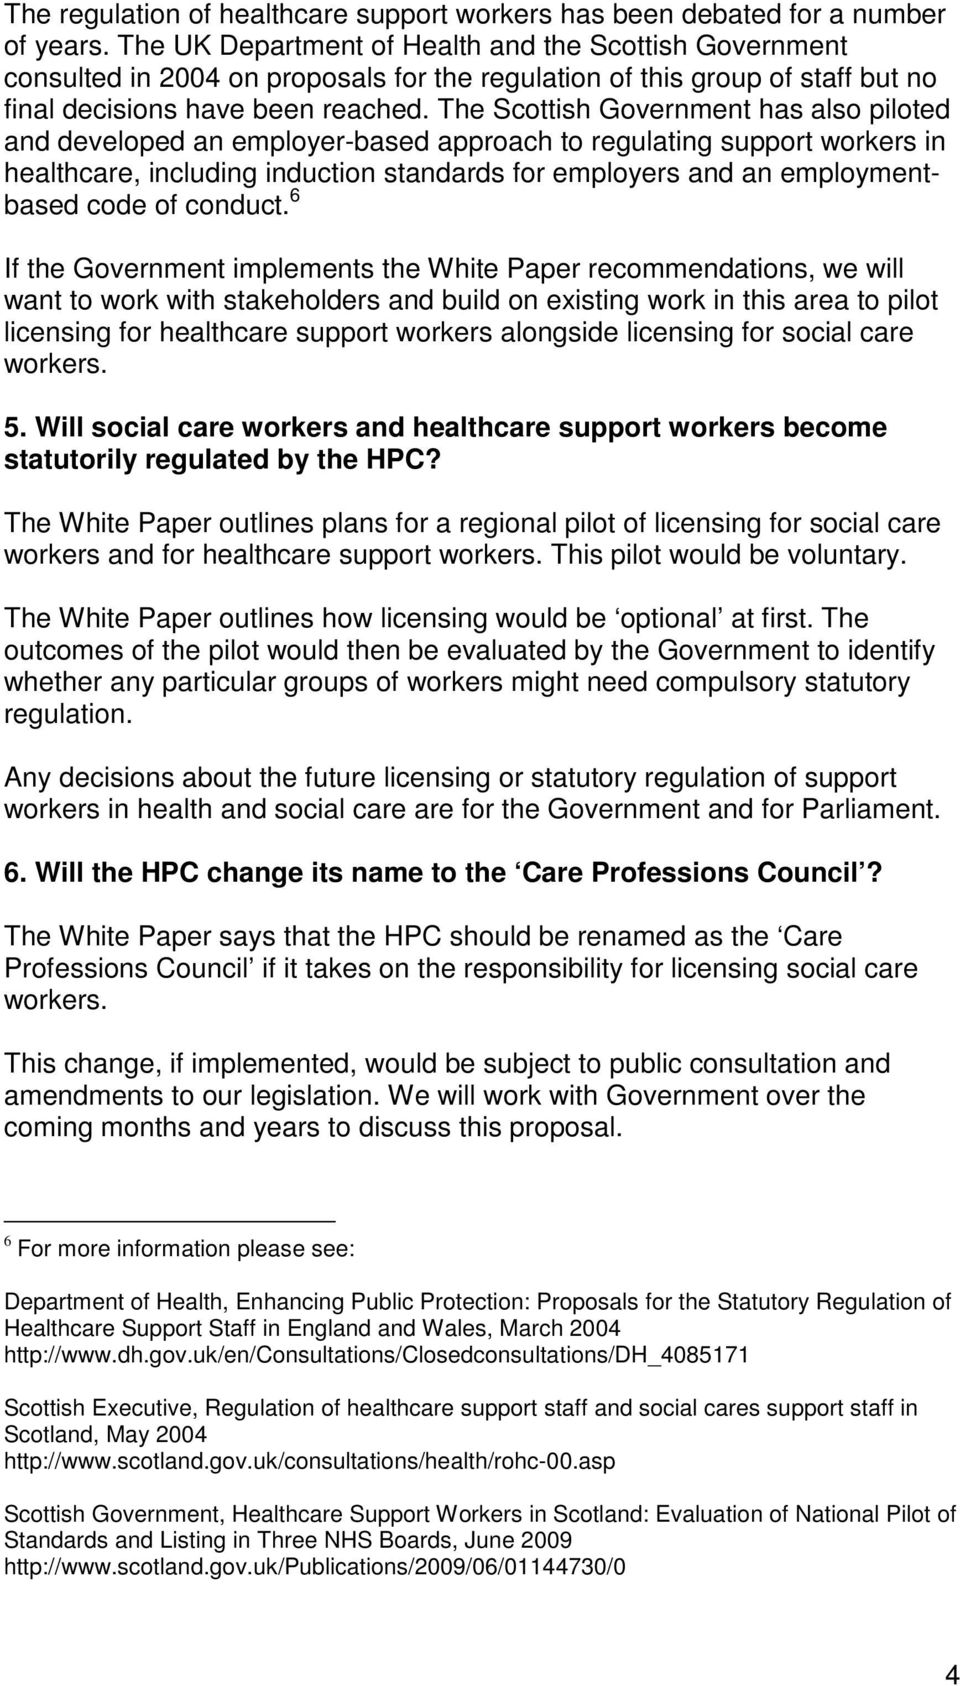 The Scottish Government has also piloted and developed an employer-based approach to regulating support workers in healthcare, including induction standards for employers and an employmentbased code